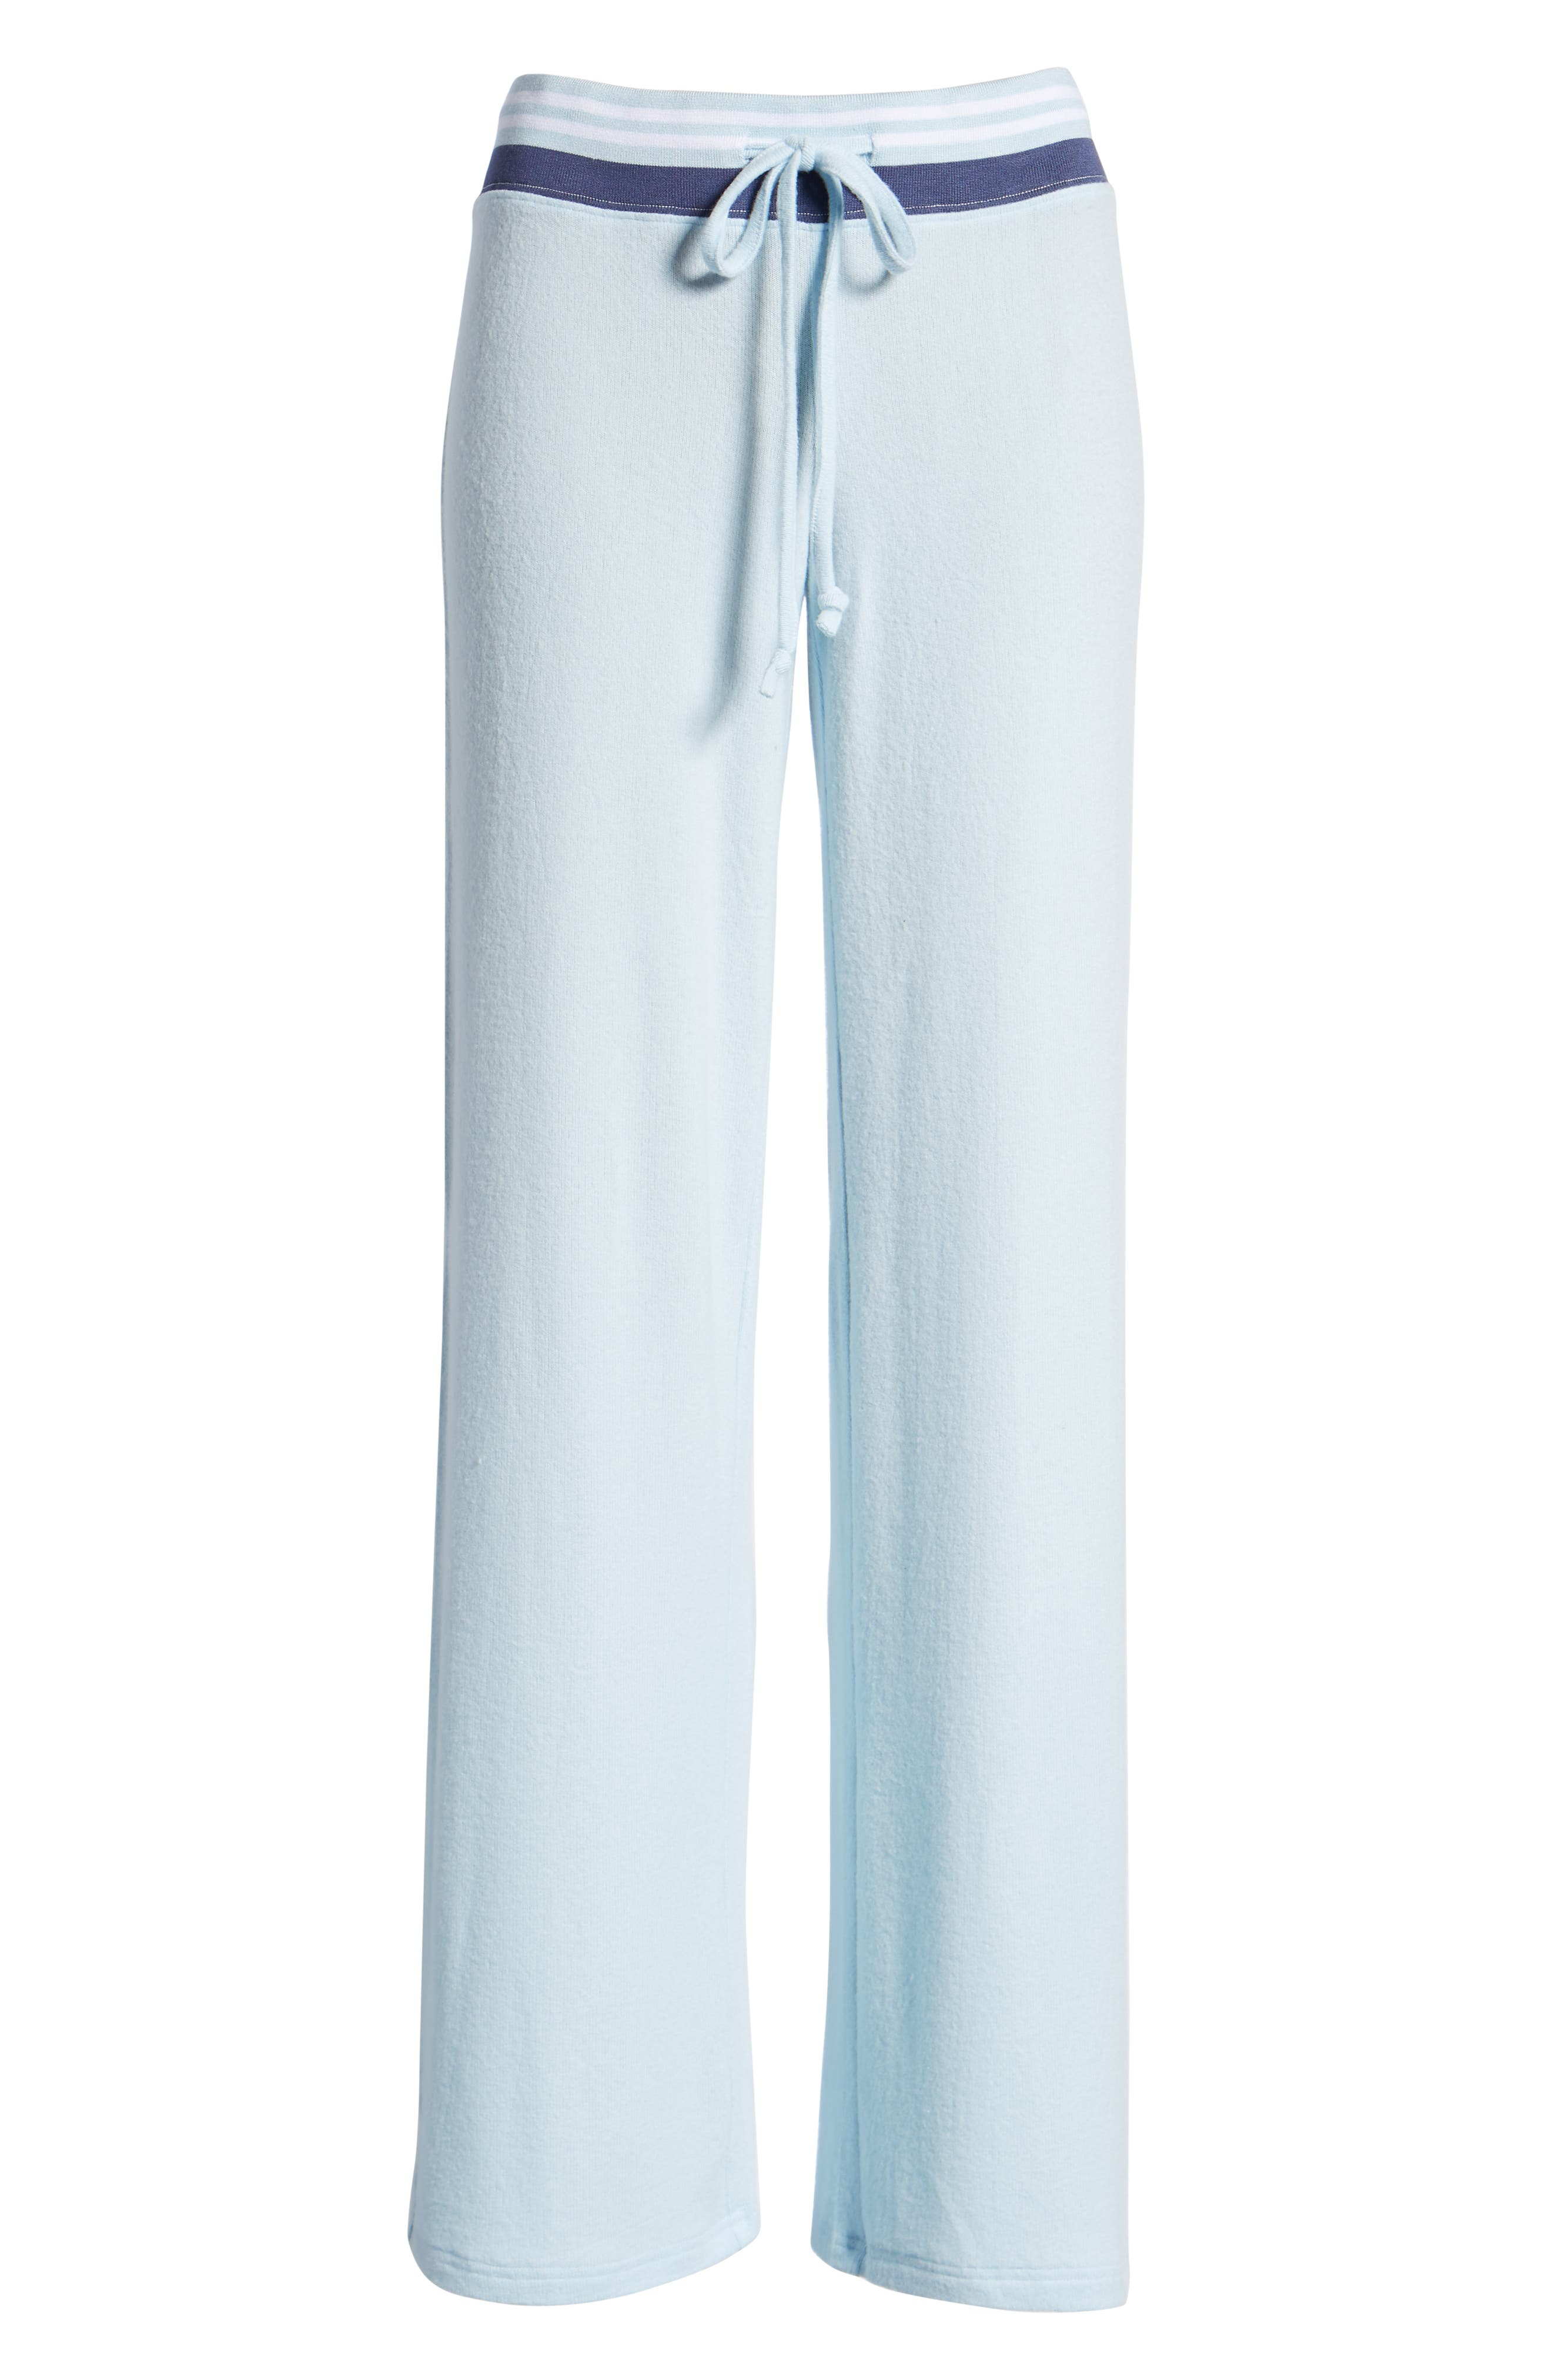 Best Boyfriend Brushed Hacci Lounge Pants,                             Alternate thumbnail 6, color,                             BLUE OMPHALODES